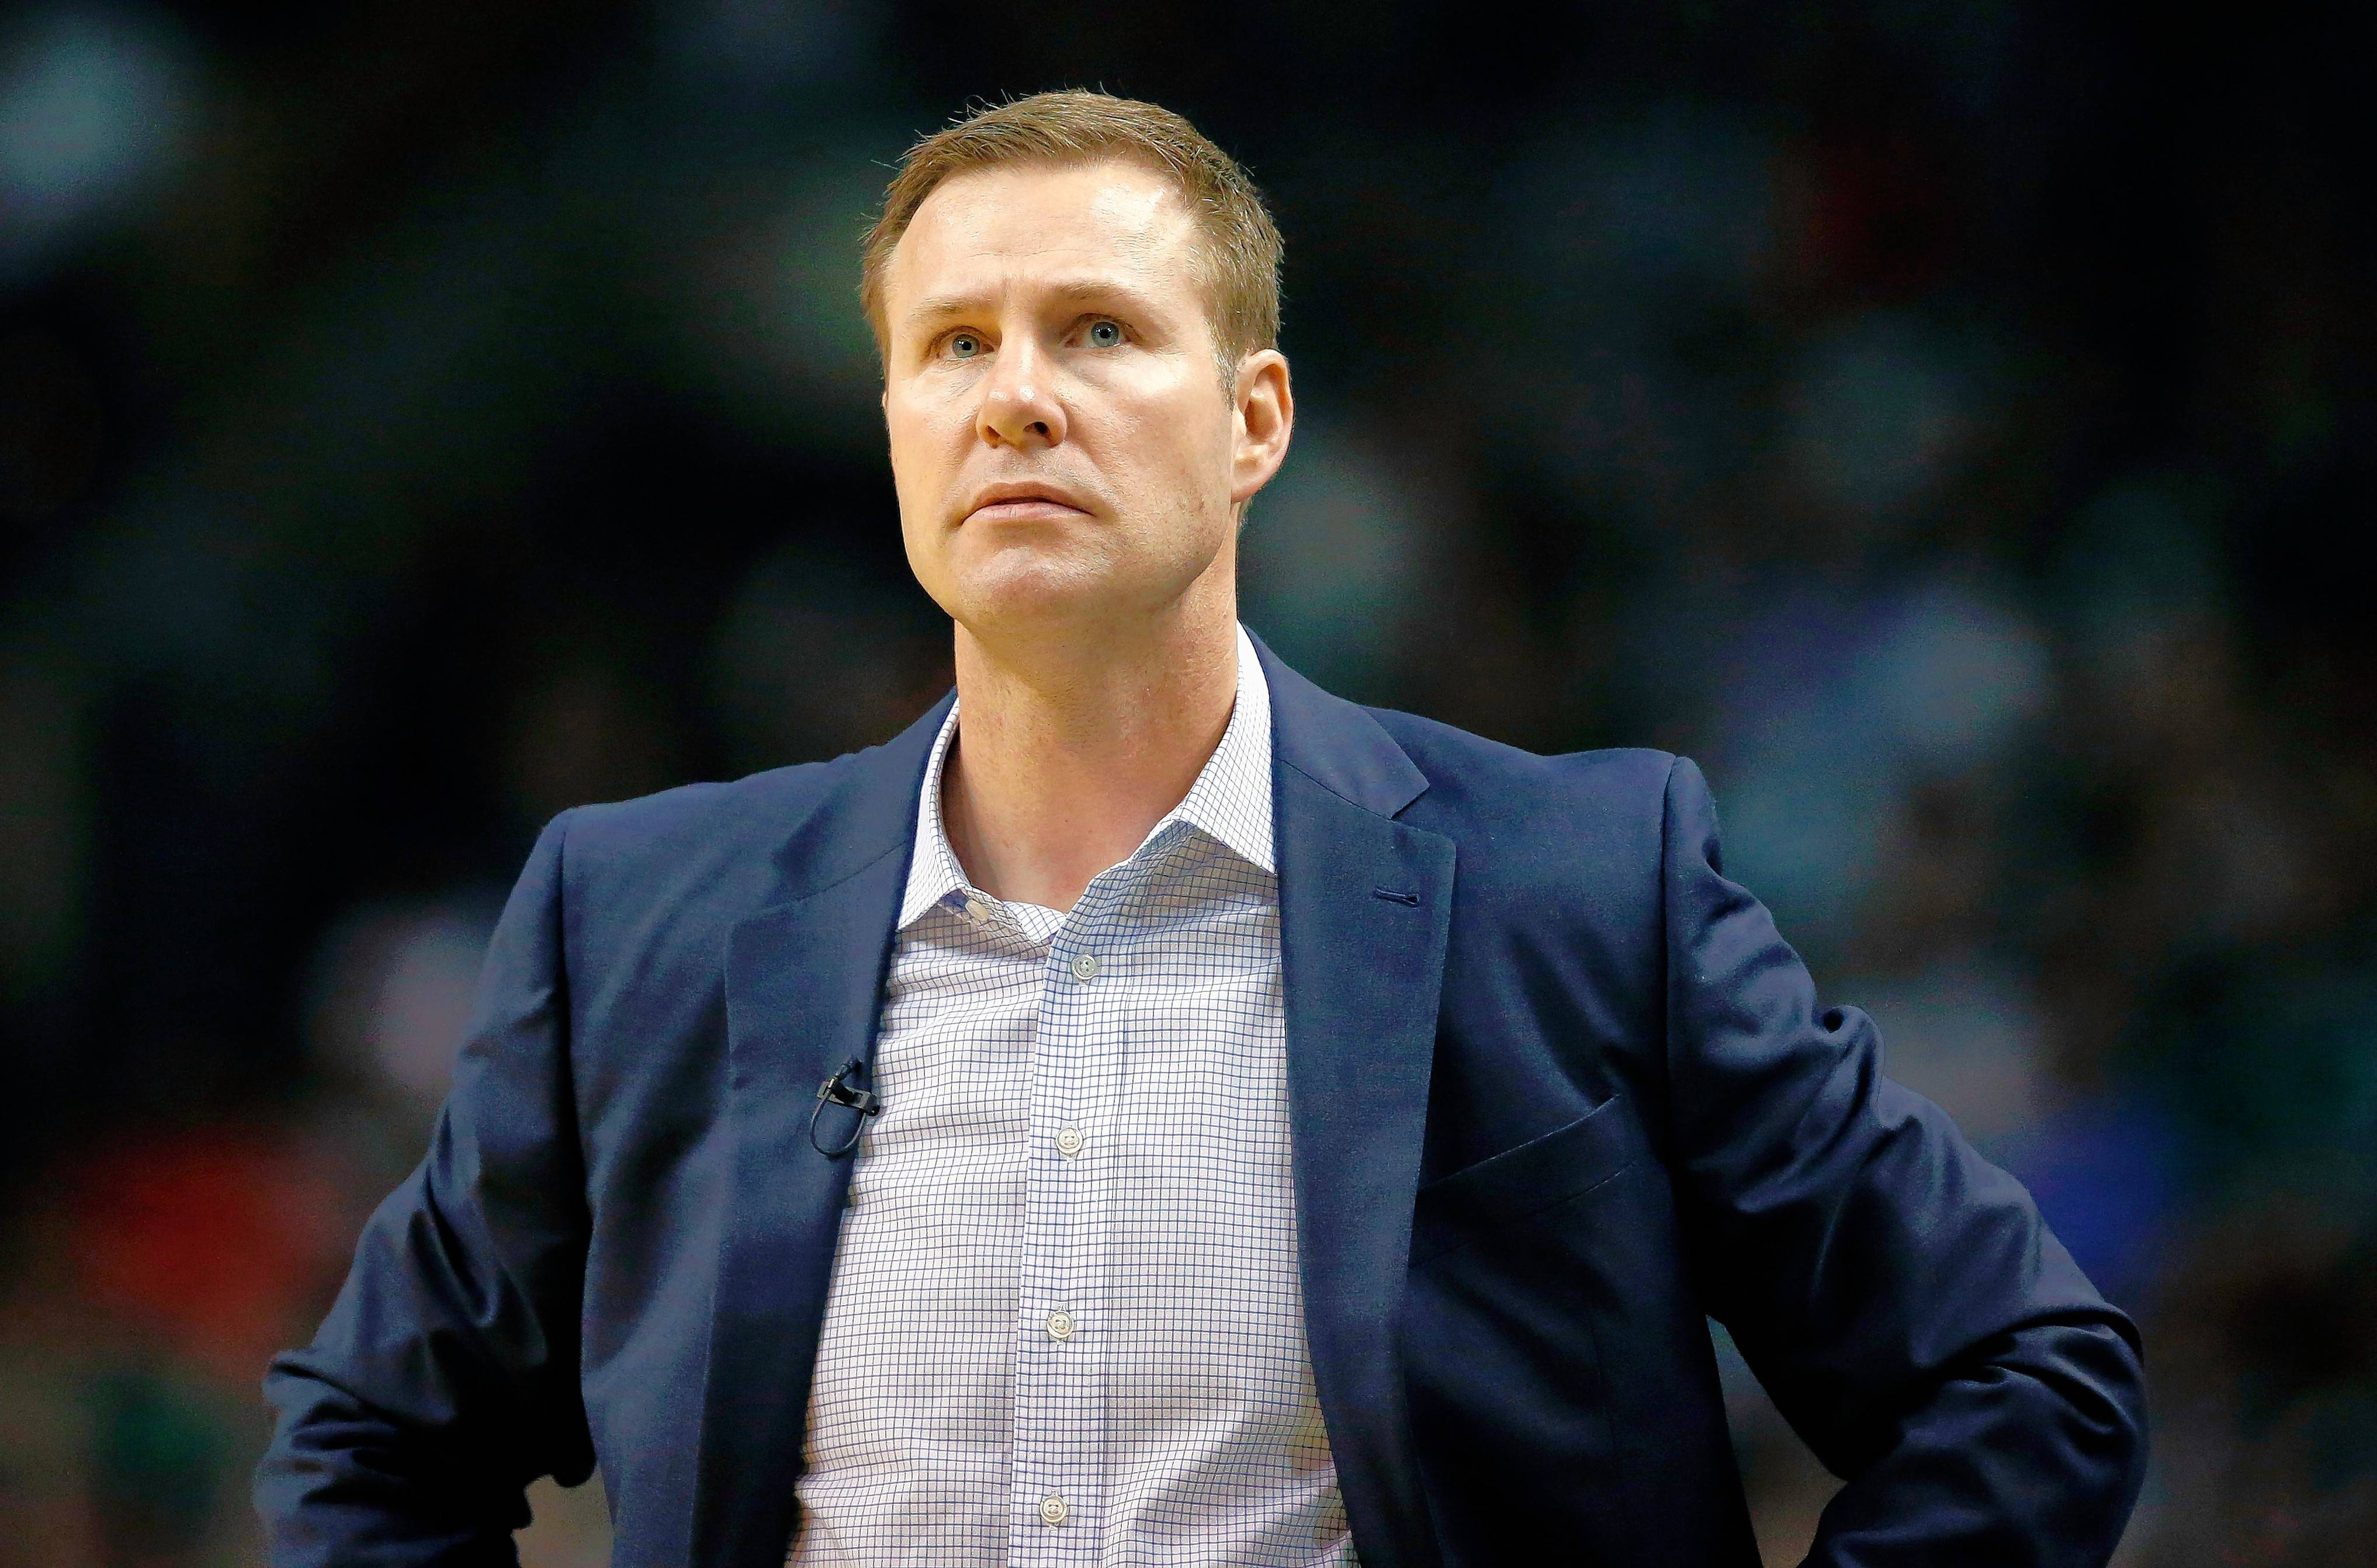 Paxson supports Hoiberg, but adds some suggestions